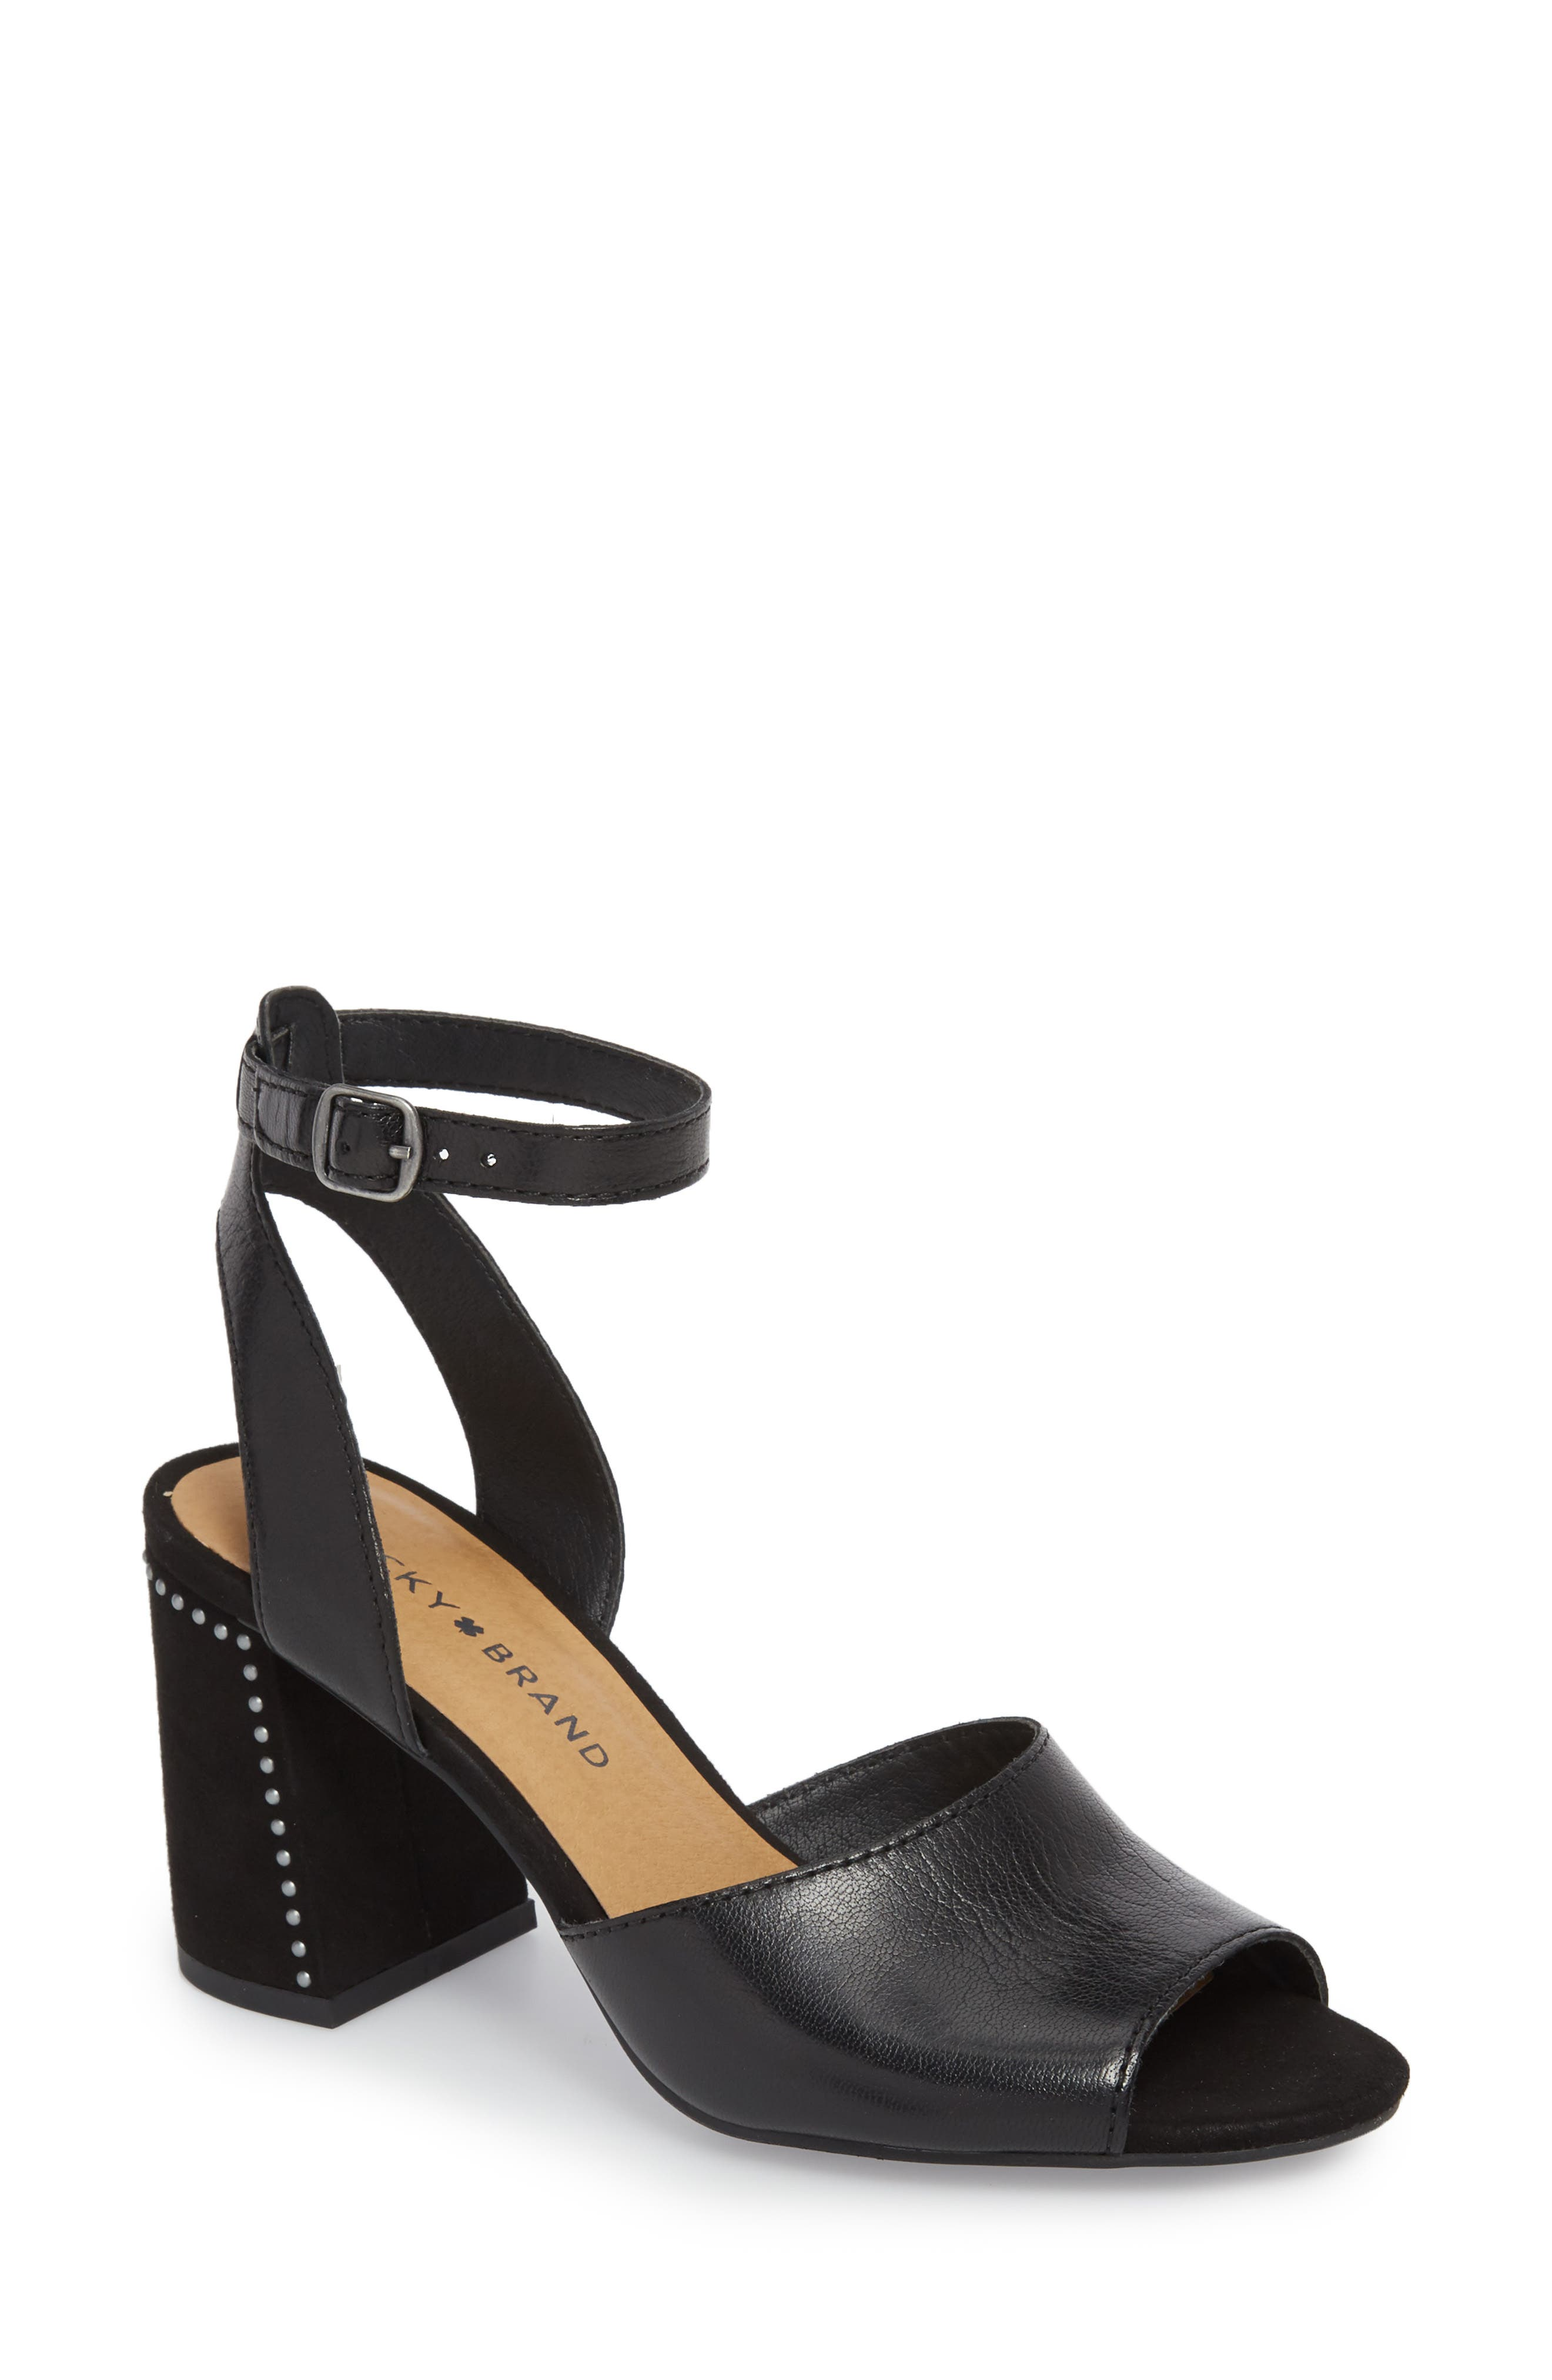 Verlena Sandal,                             Main thumbnail 1, color,                             Black Leather